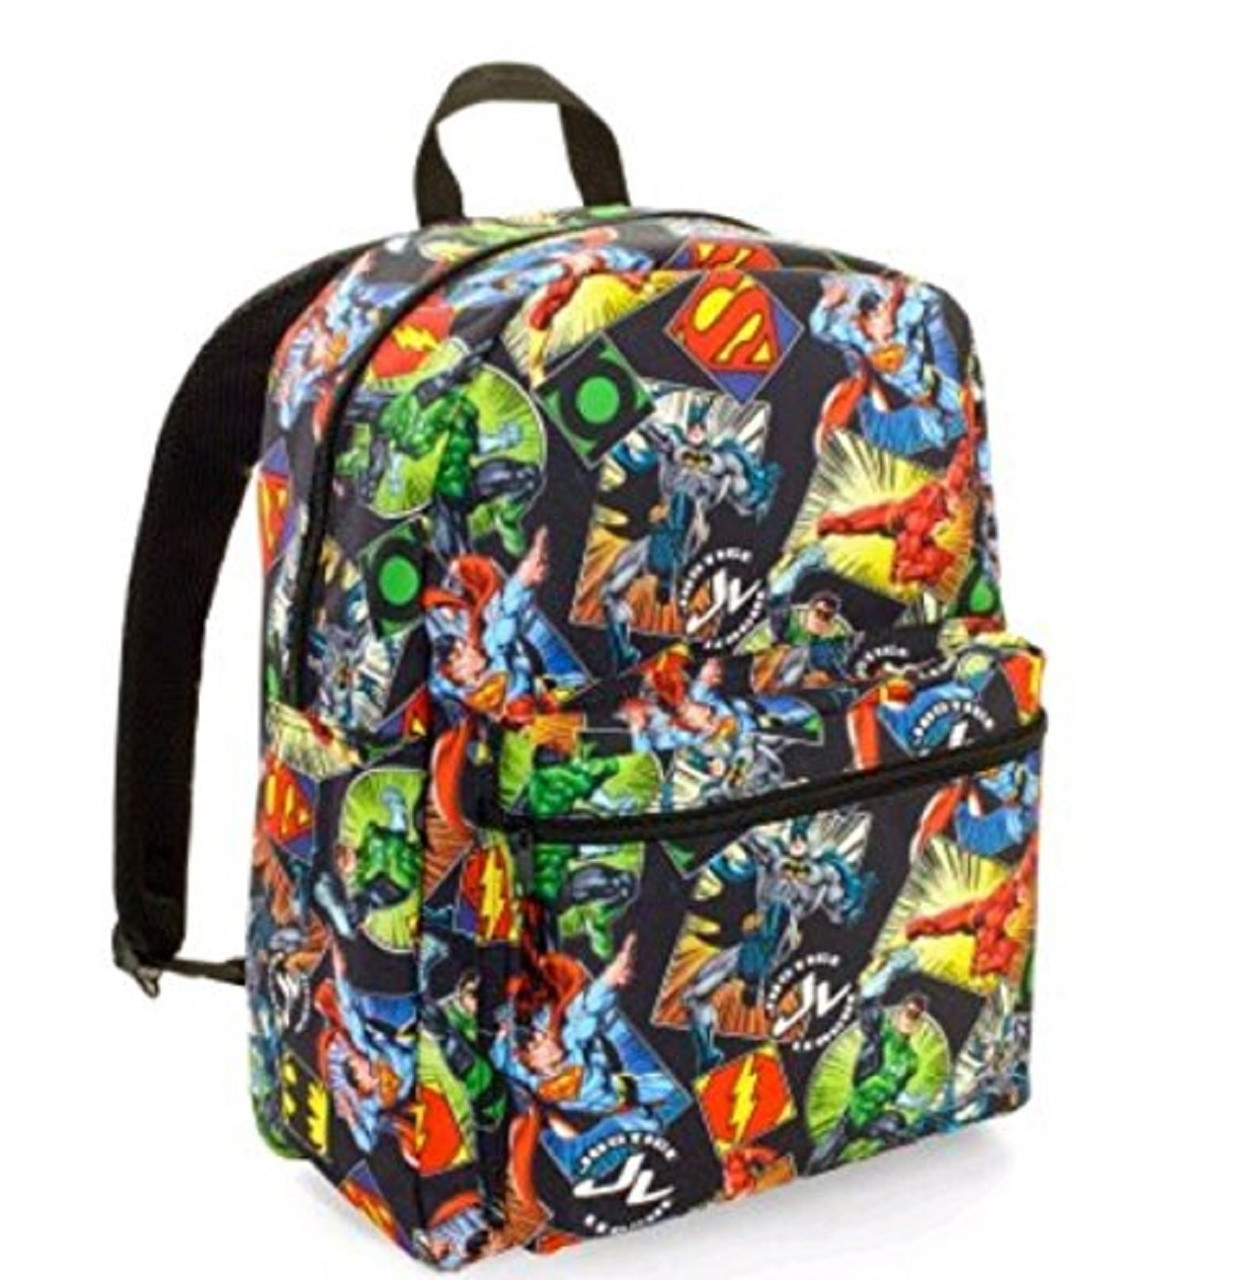 Backpack - Superman - Large 16 Inch - All Over Print